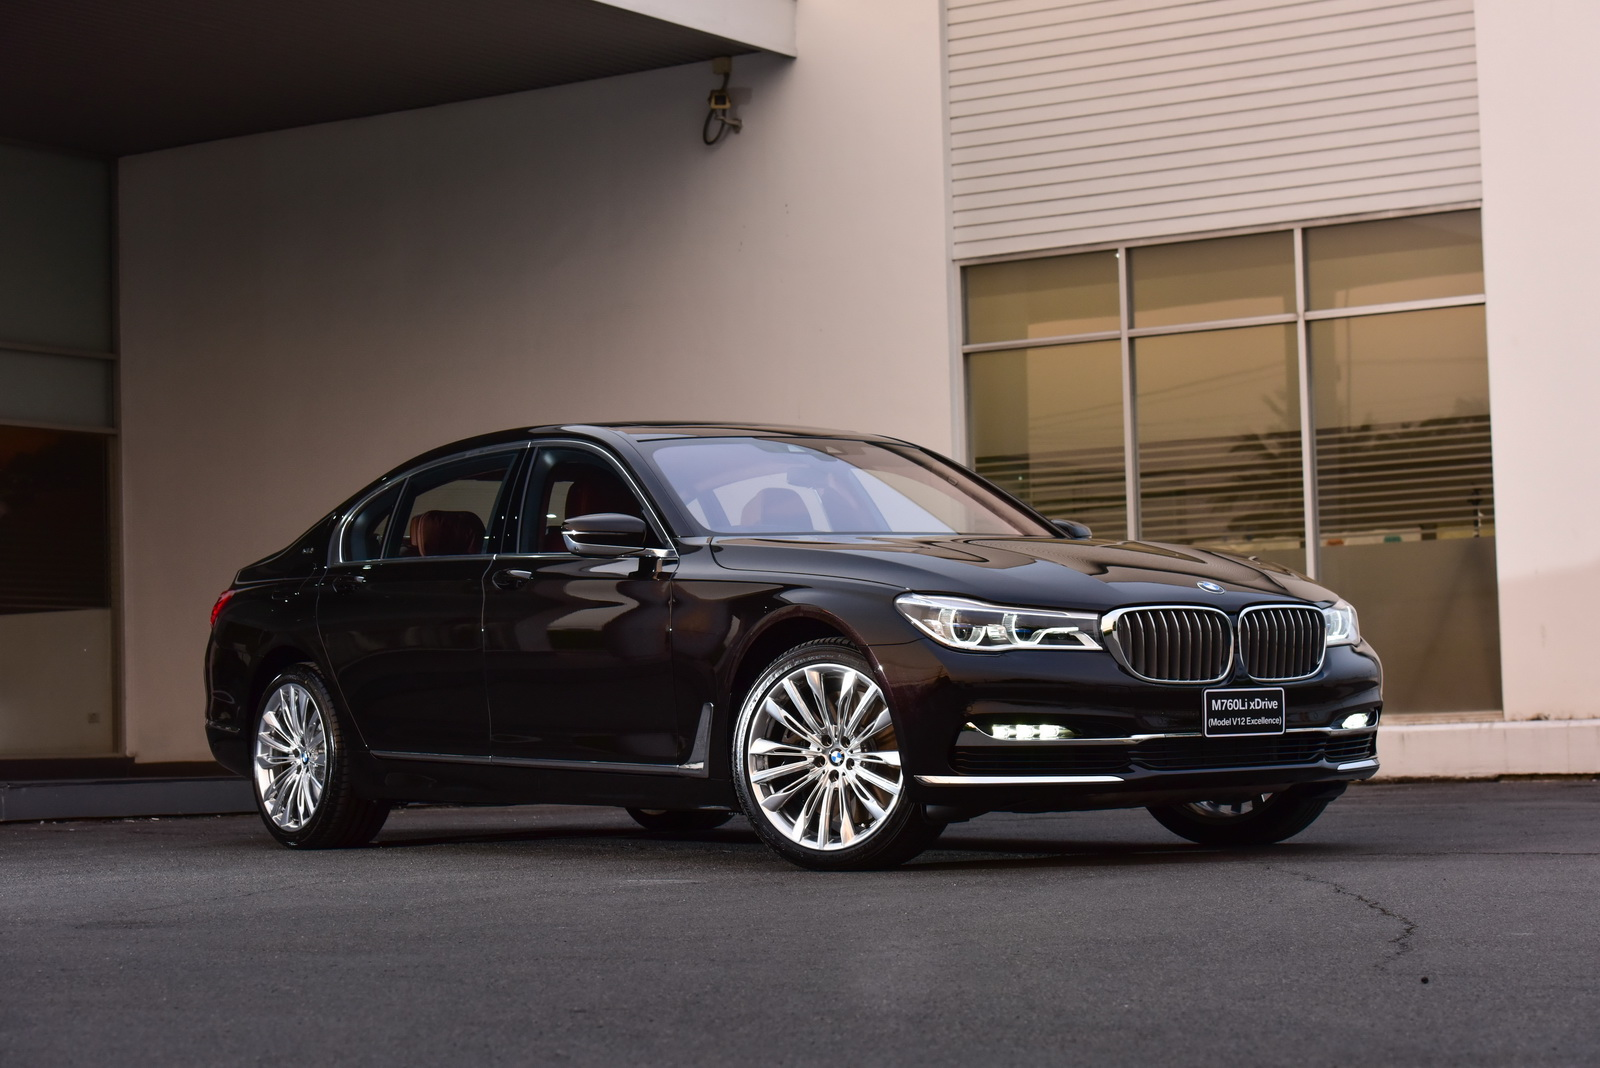 BMW M760Li XDrive V12 Excellence 7 Series